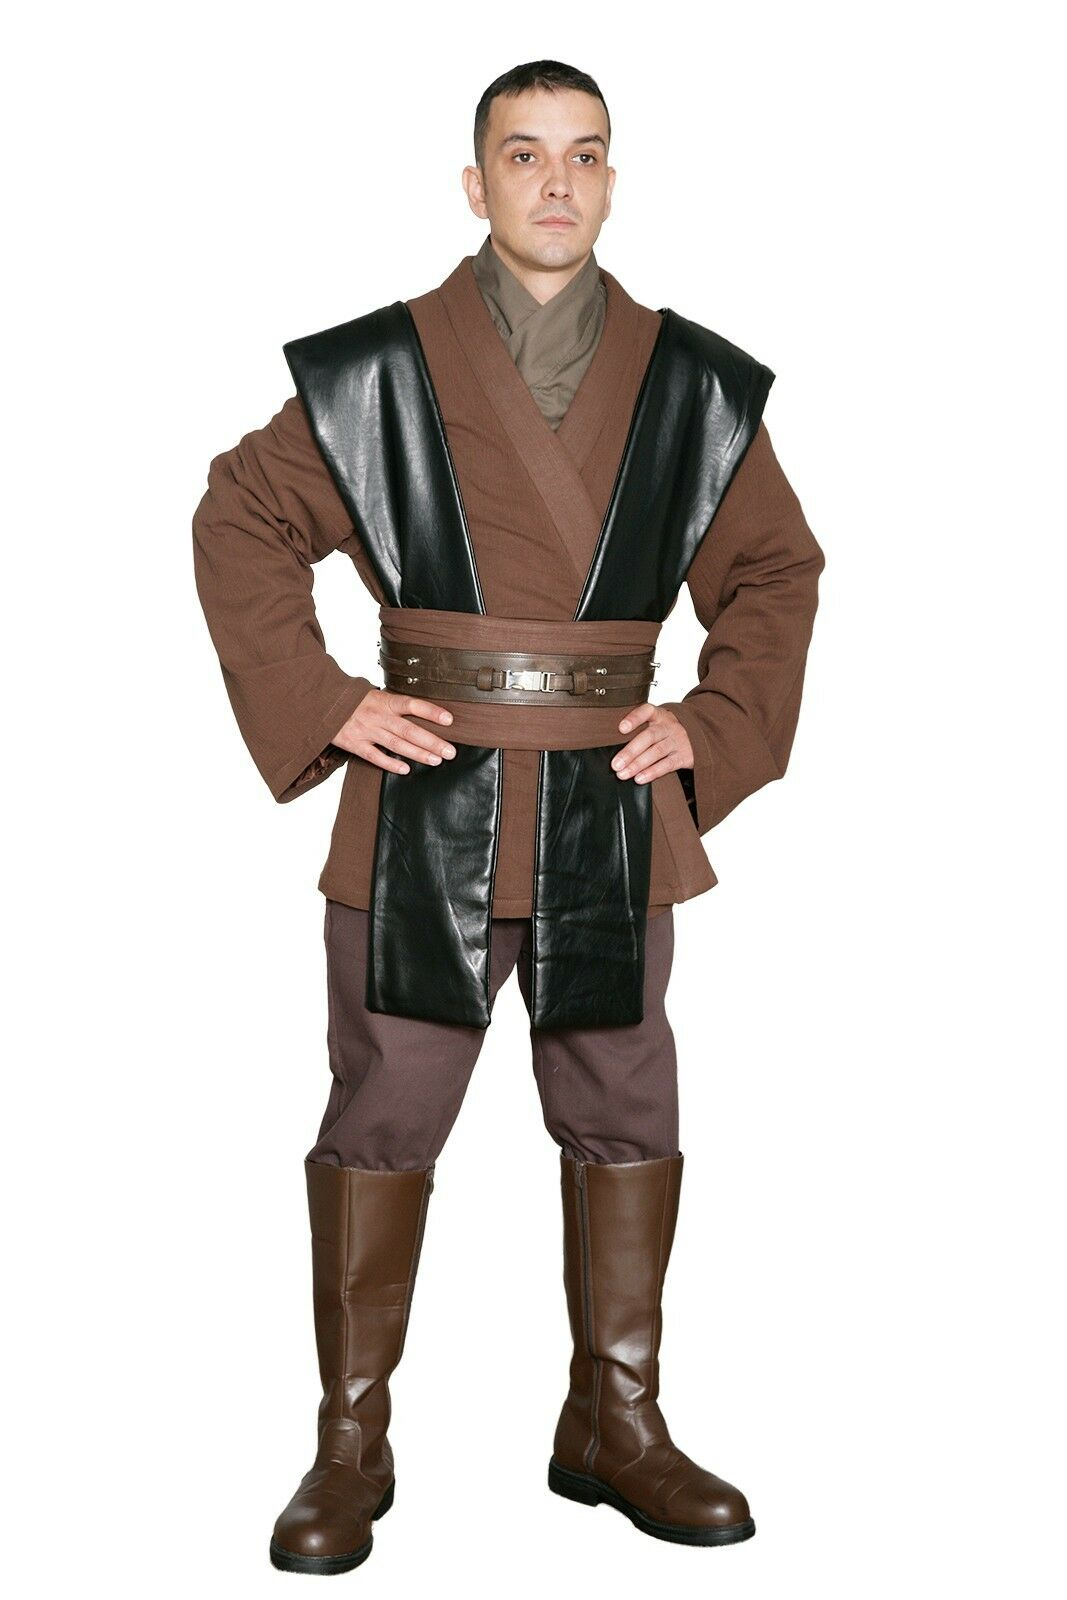 Anakin Skywalker Jedi Star Wars Anakin Skywalker Jedi Costume Quality Replica